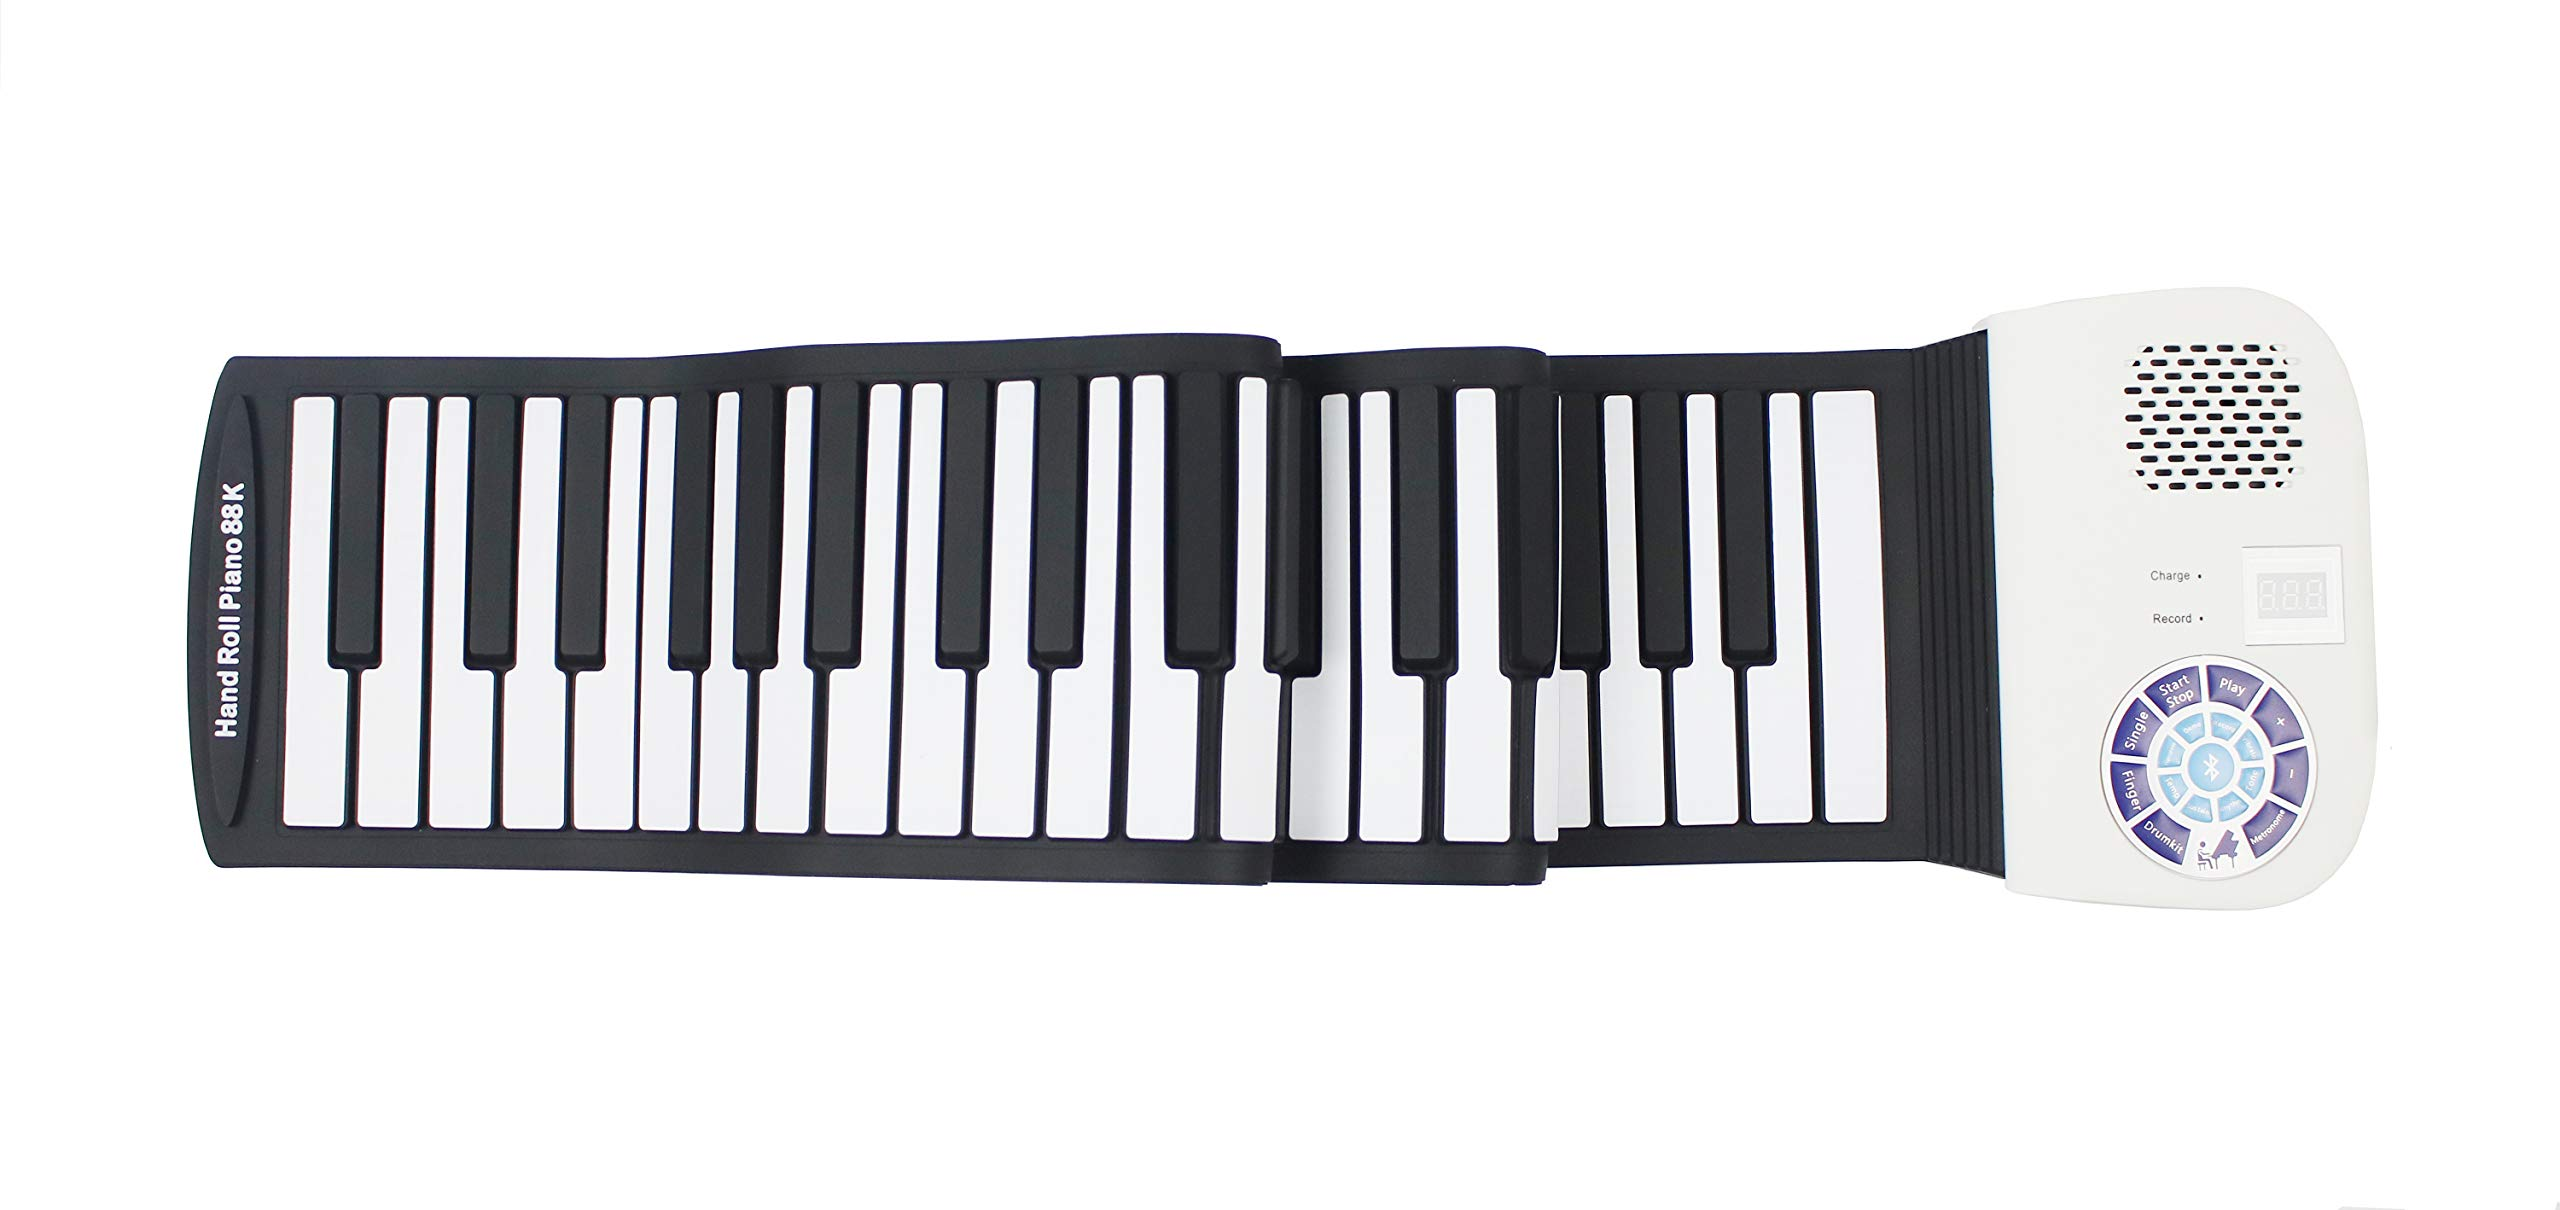 iLearnMusic Roll Up Piano, Premium Grade Silicone, Built-in Speakers - Educational Piano (61 Keys (F61)) by iLearnMusic